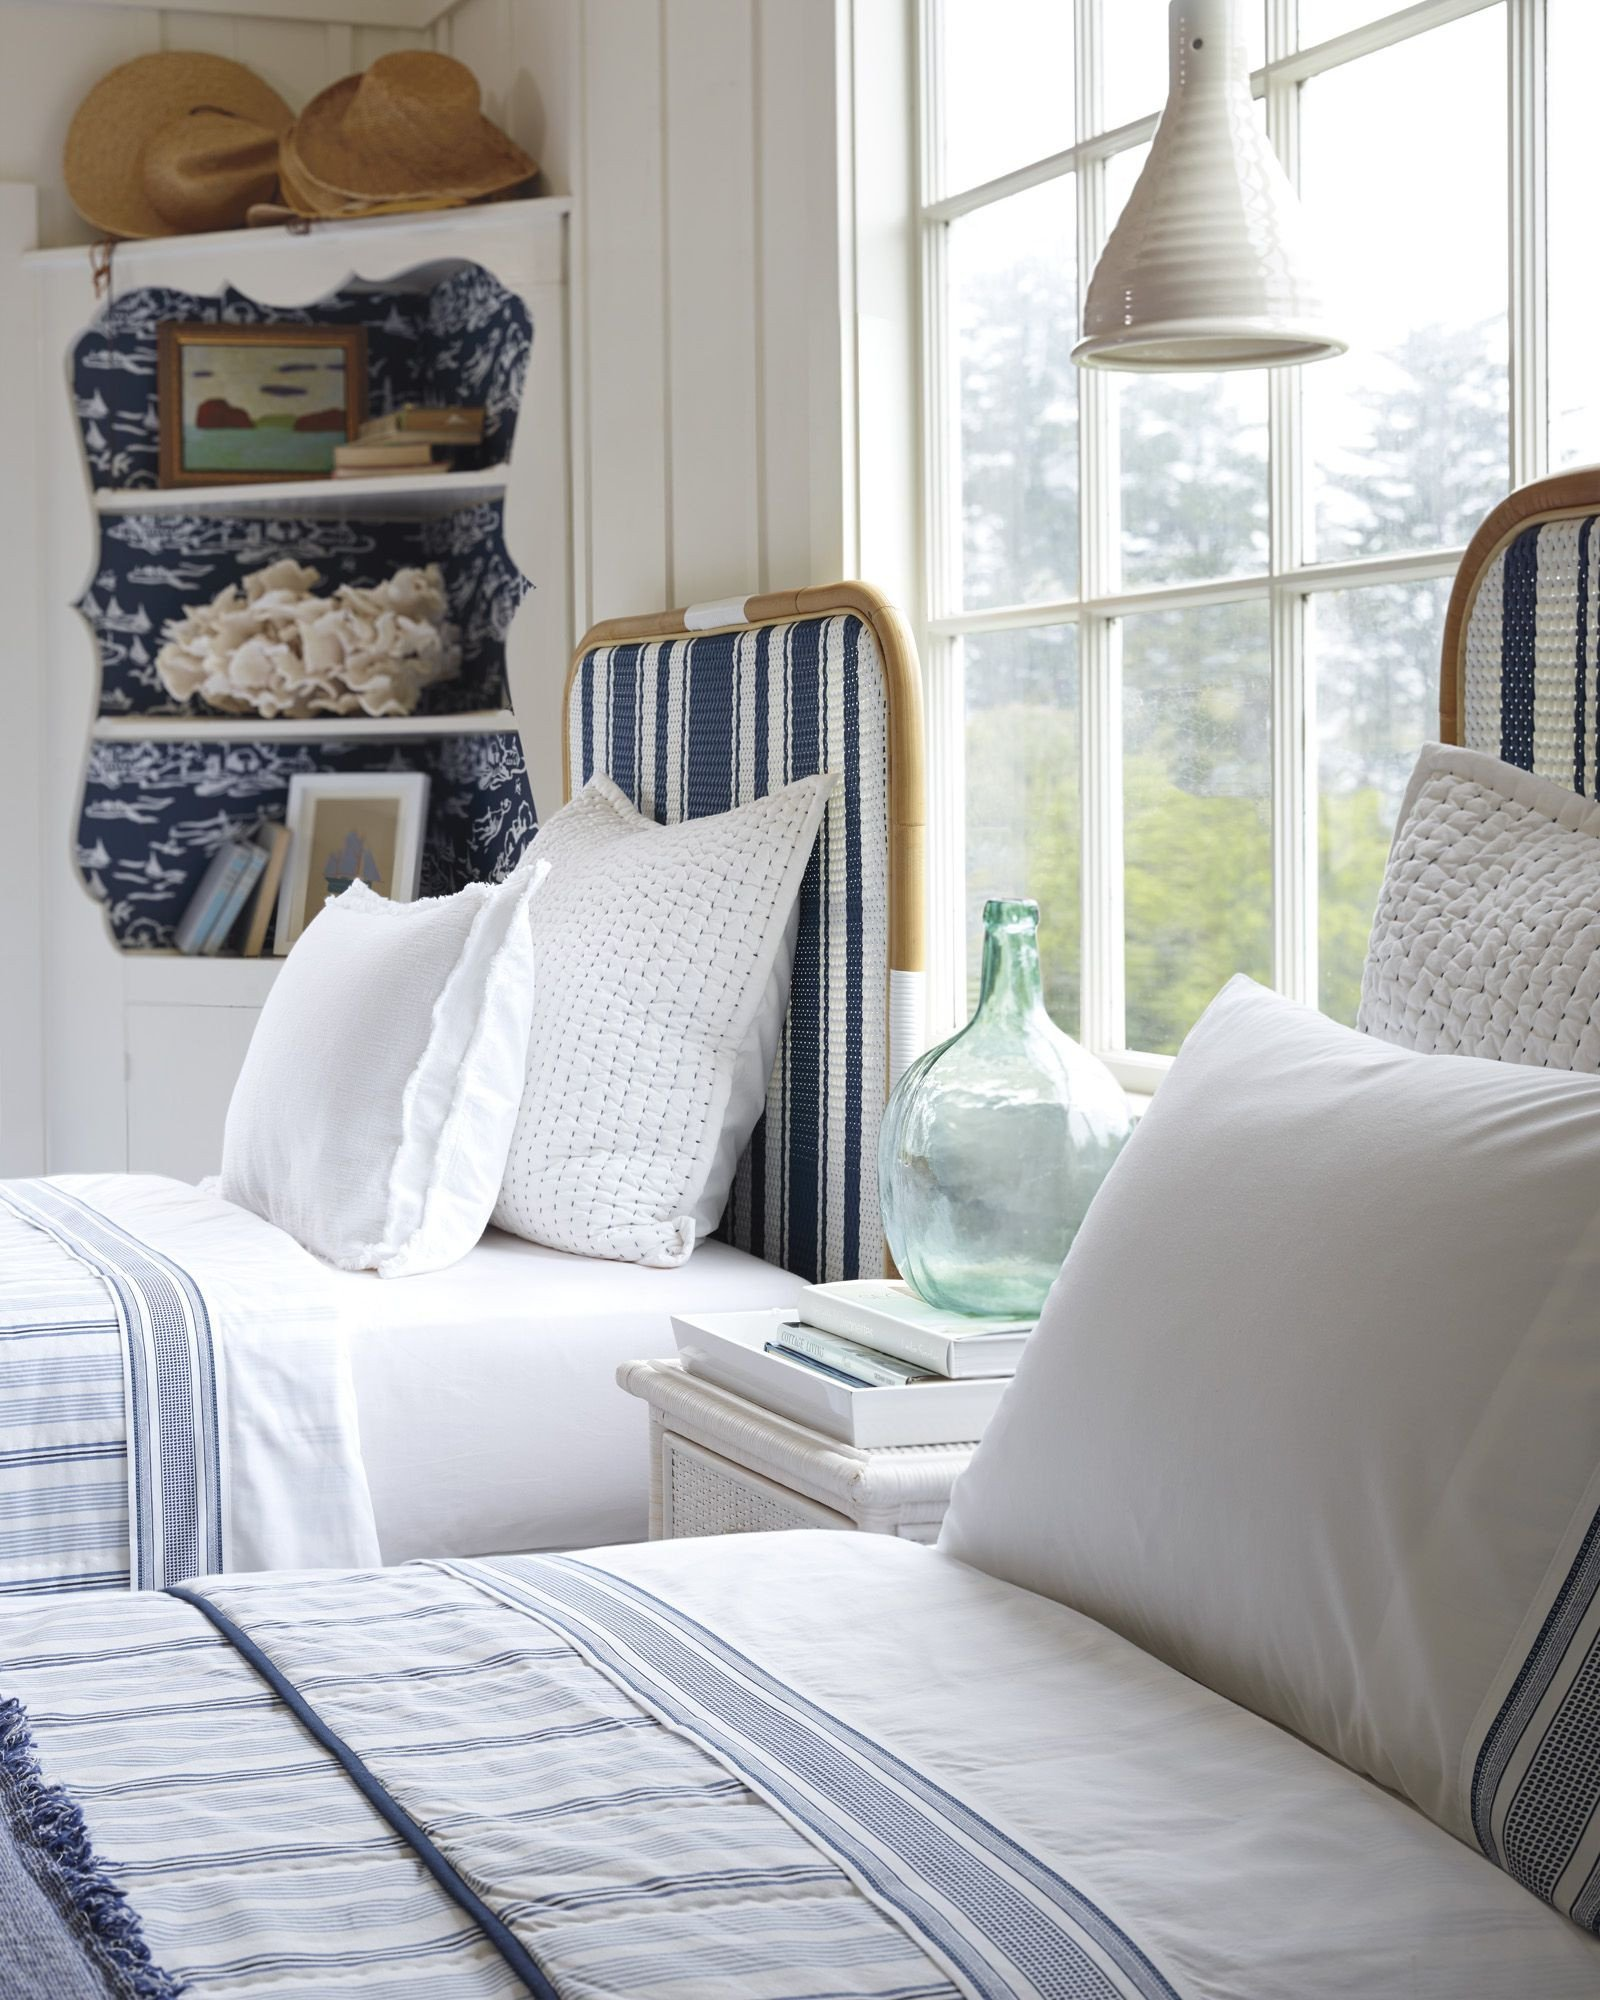 Beach Style Bedroom Furniture Beautiful Twin Bed Decked Out In Navy & White